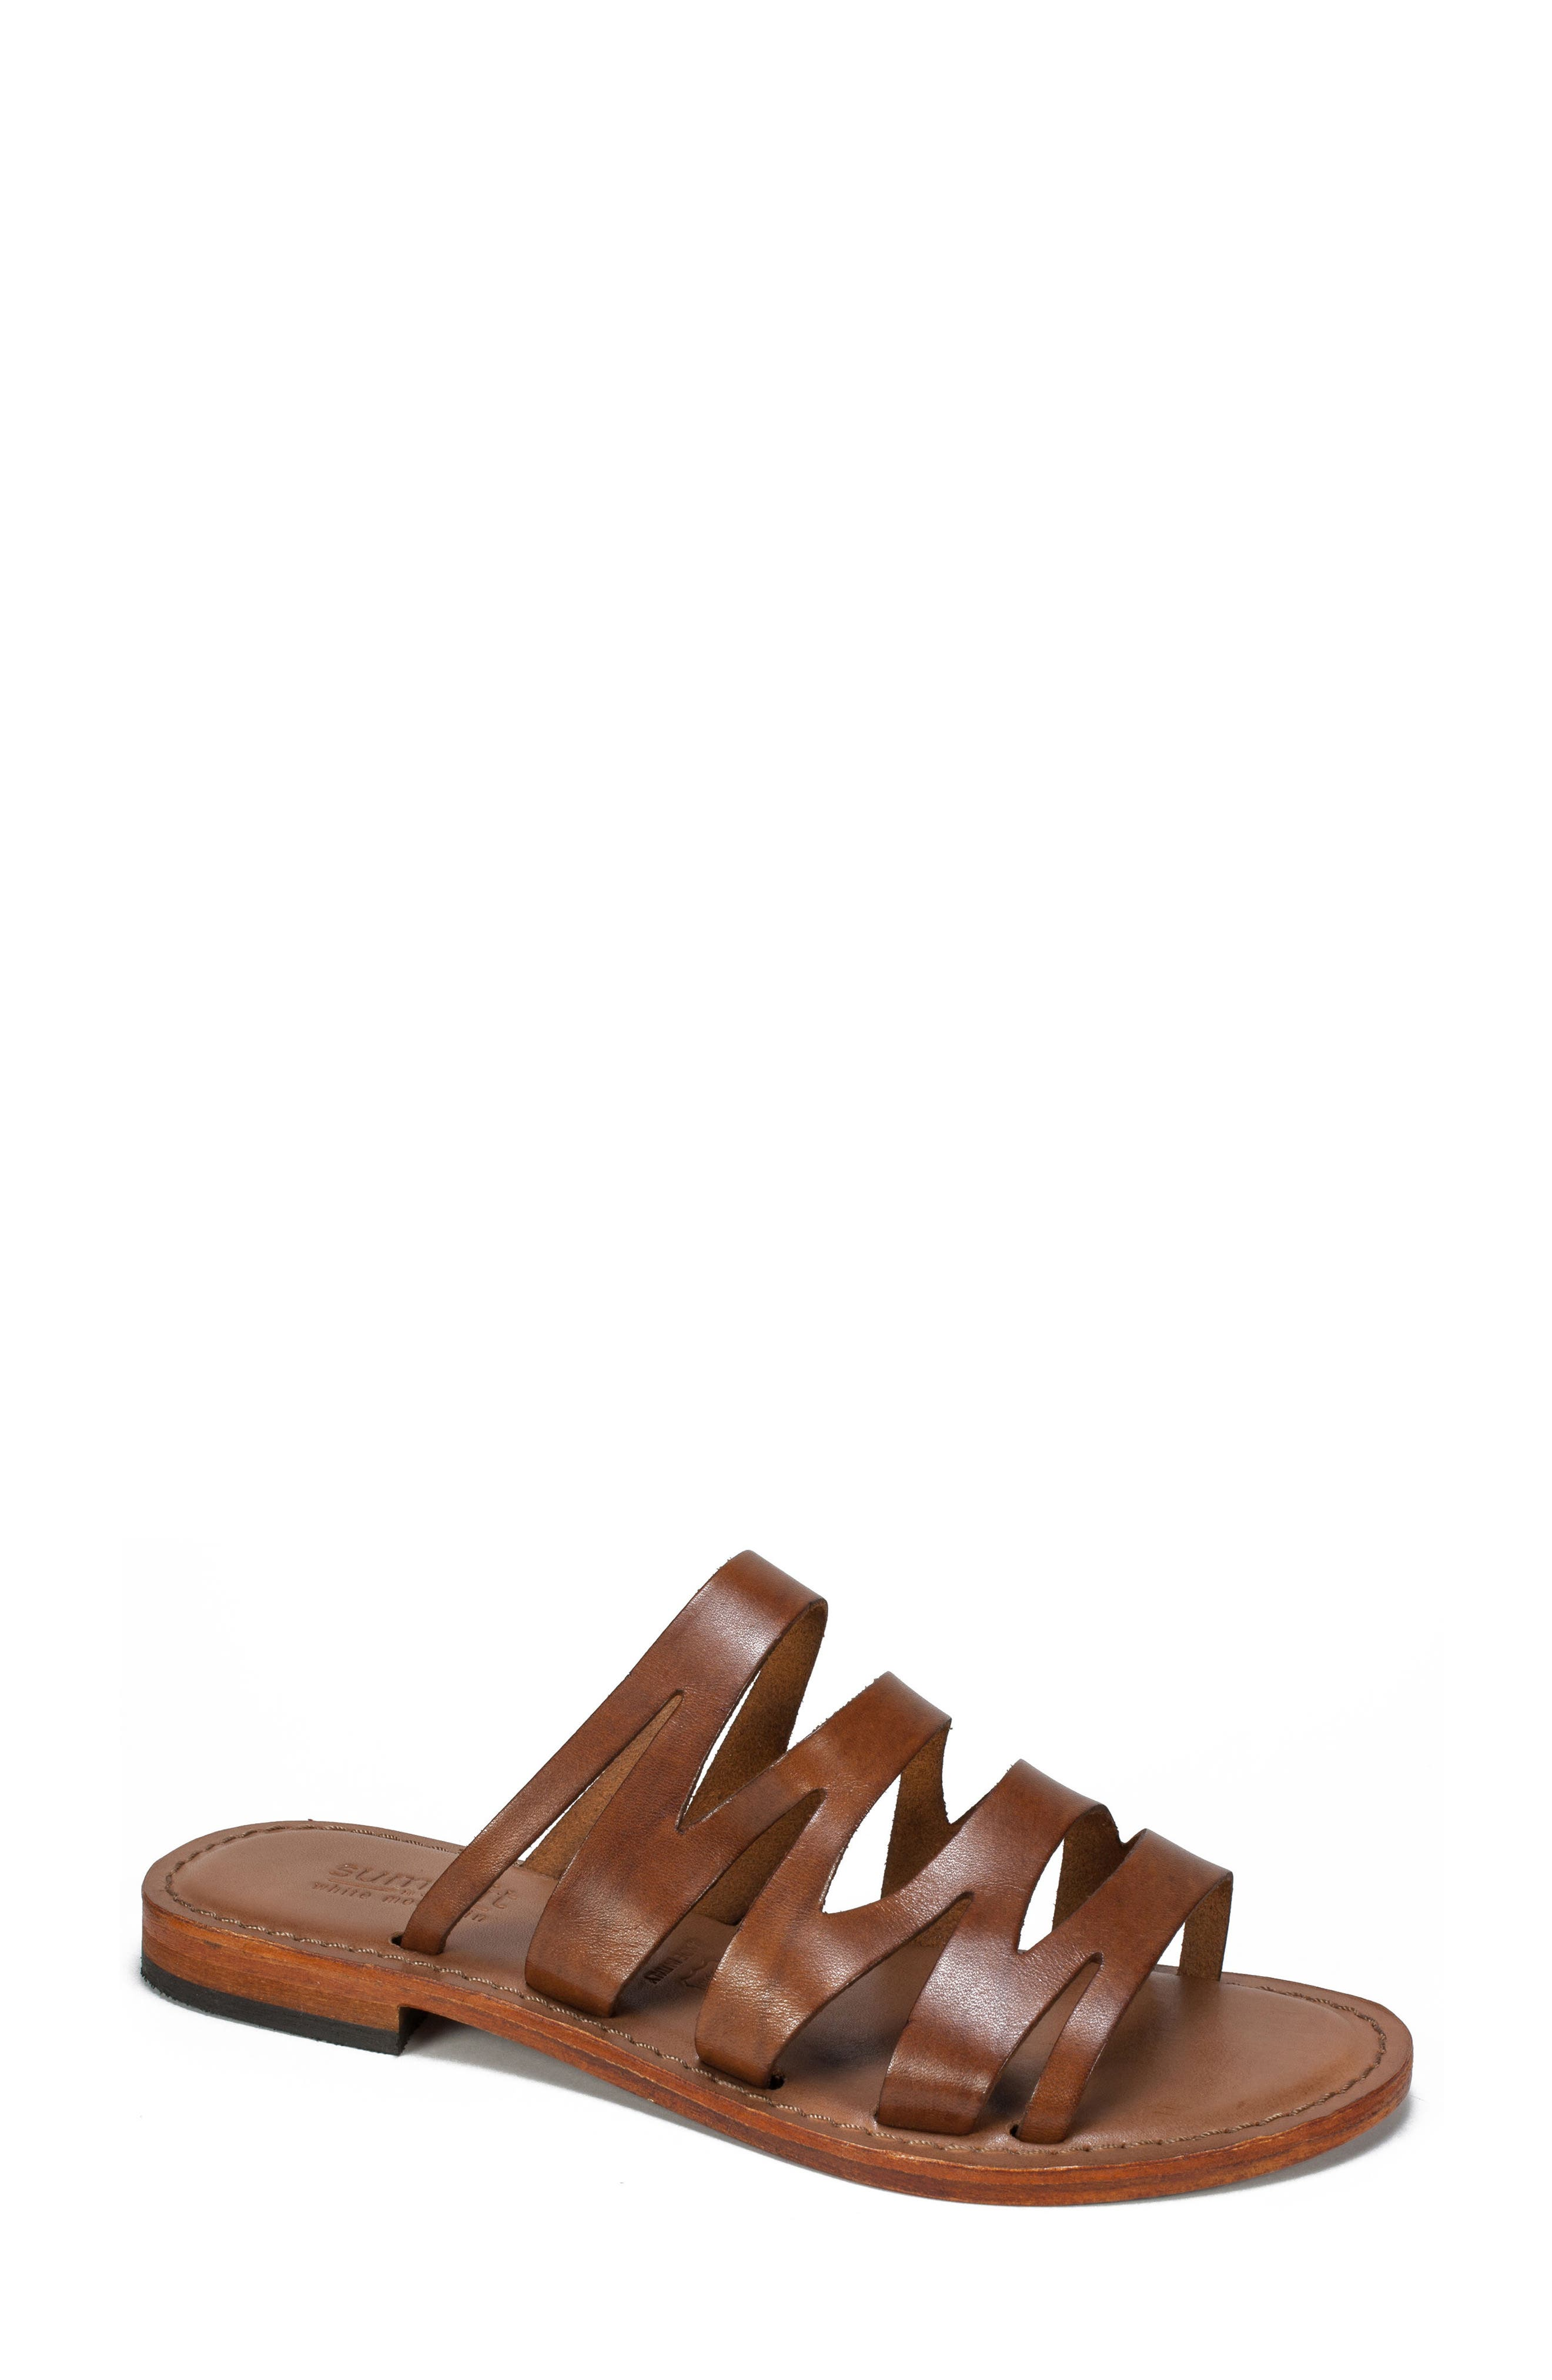 Summit Eden Sandal,                         Main,                         color, LIGHT BROWN LEATHER